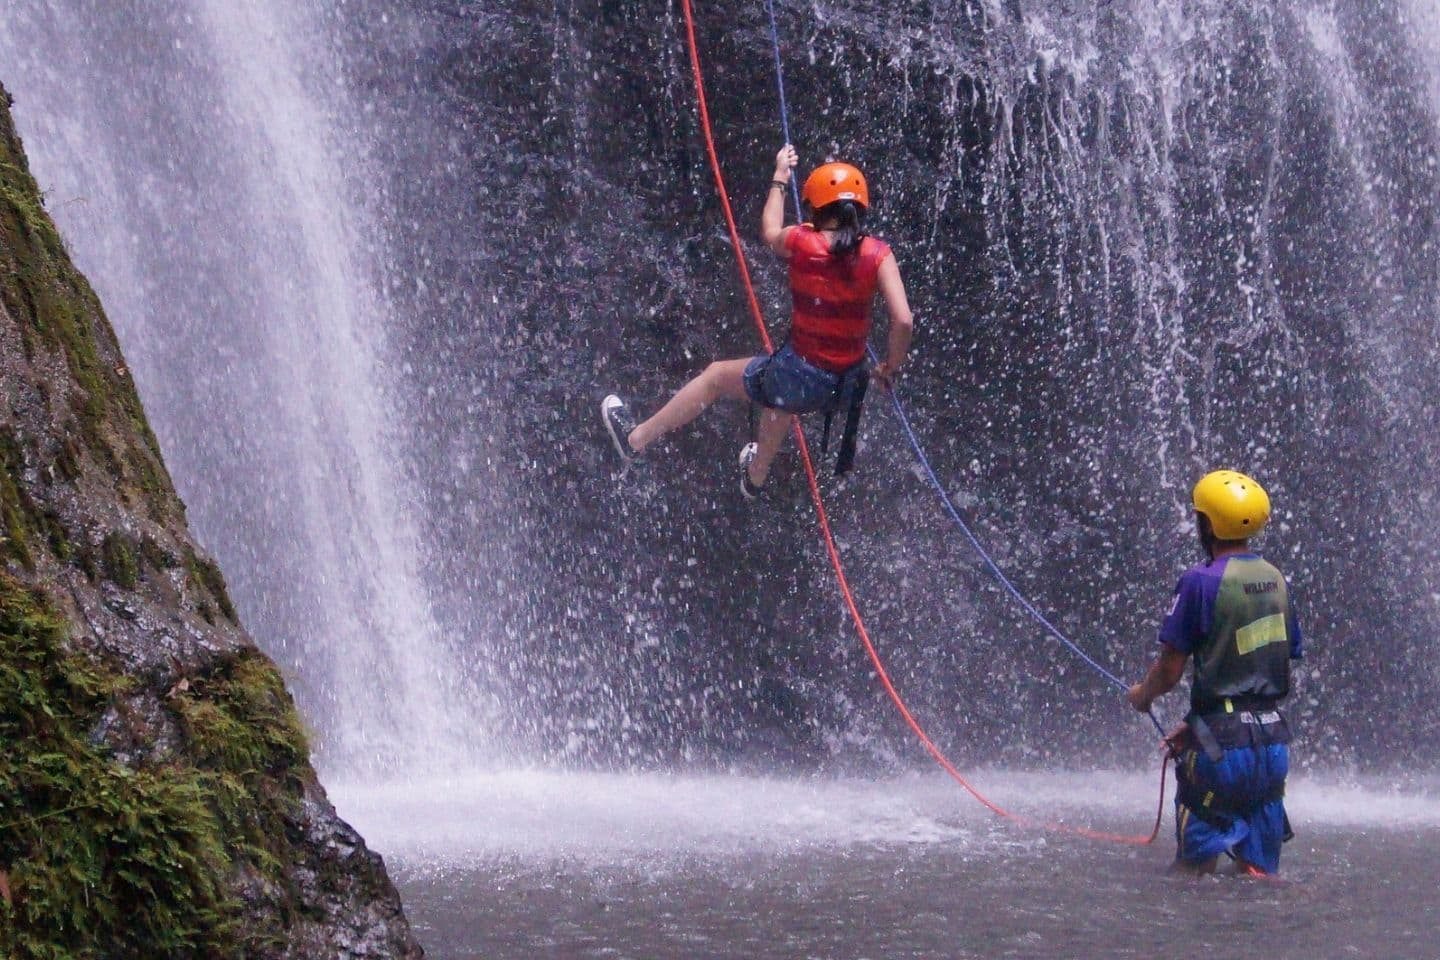 woman canyoning down a waterfall